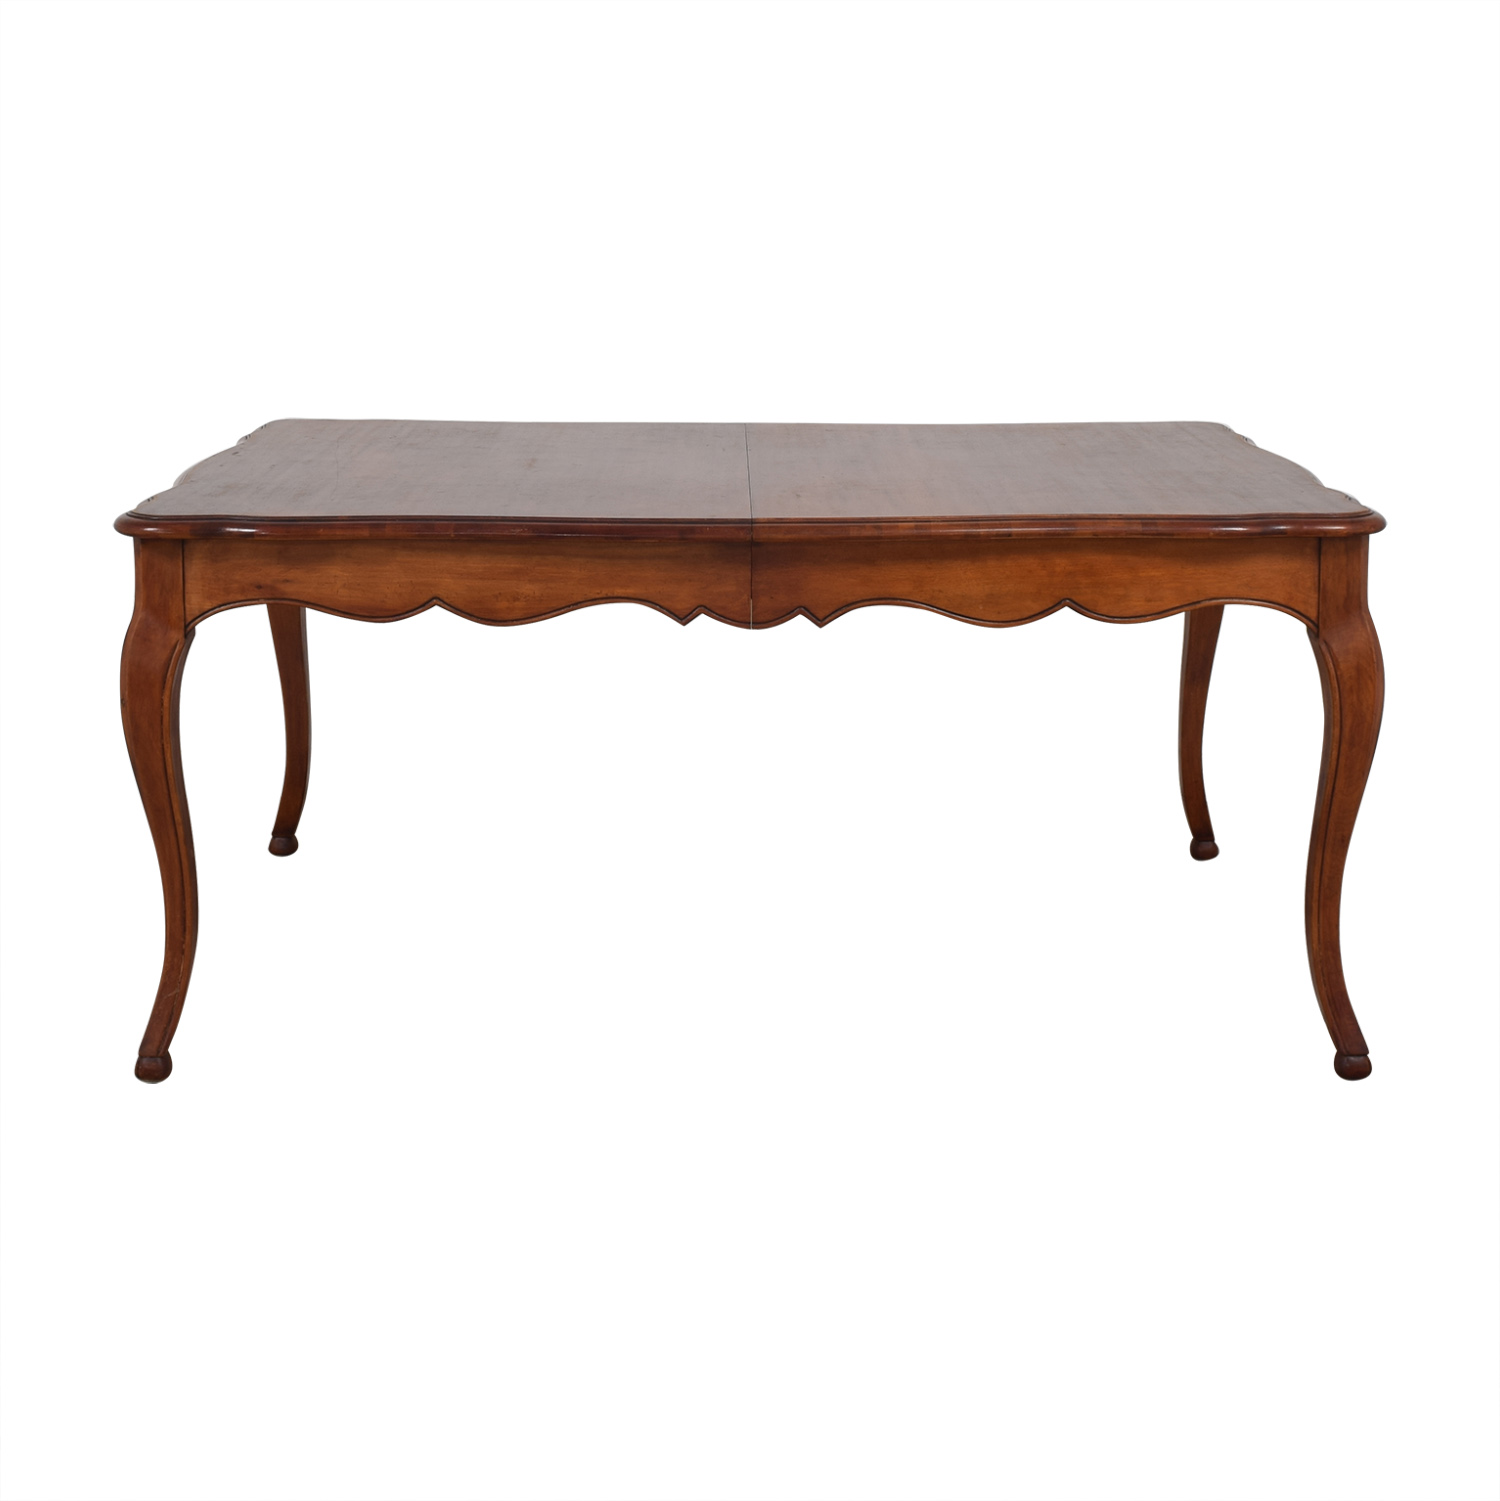 89 Off Vintage Dining Table Tables